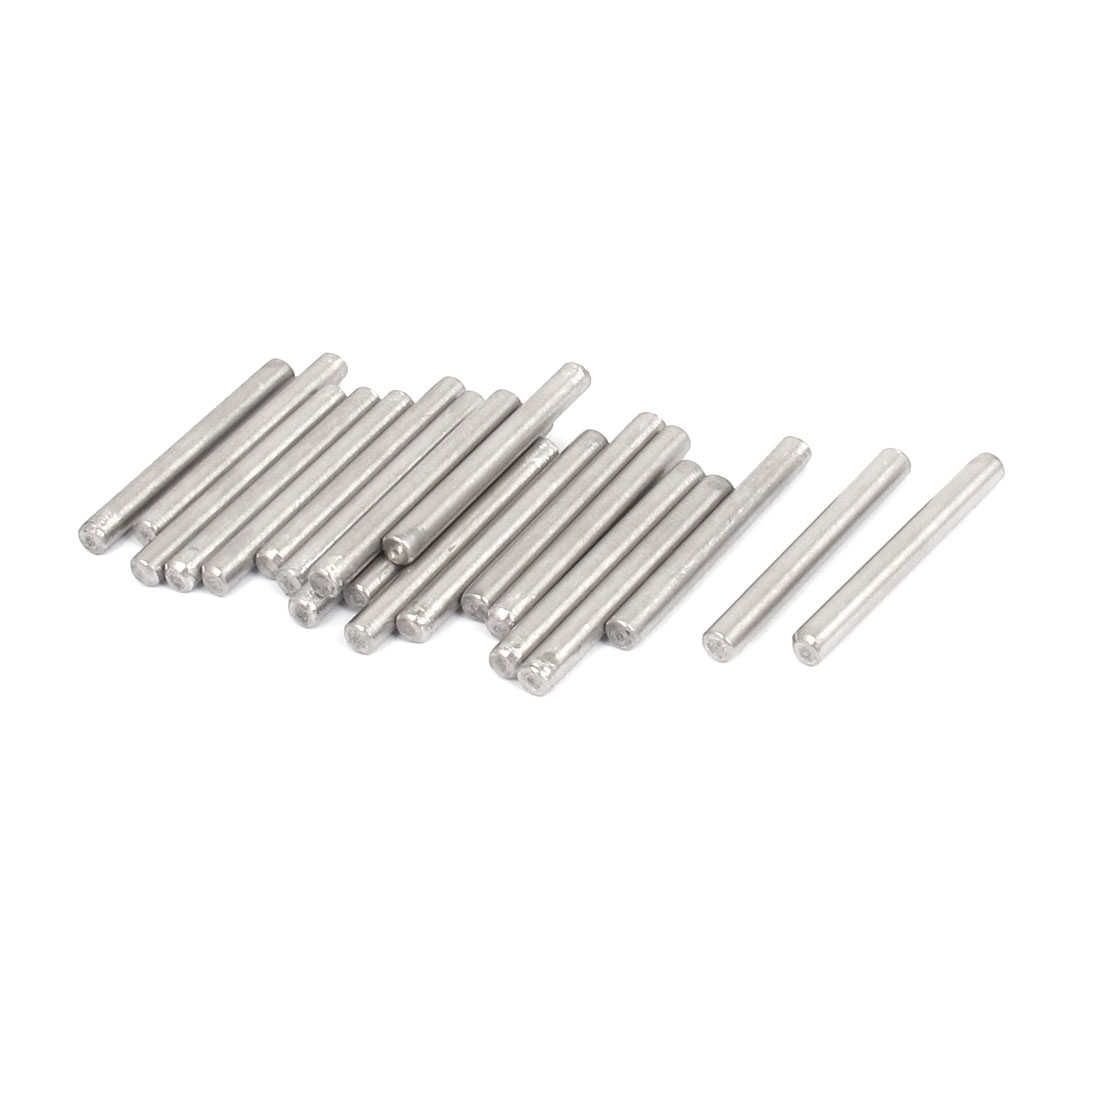 3mmx28mm 304 Stainless Steel Parallel Dowel Pins Fastener Elements 20pcs